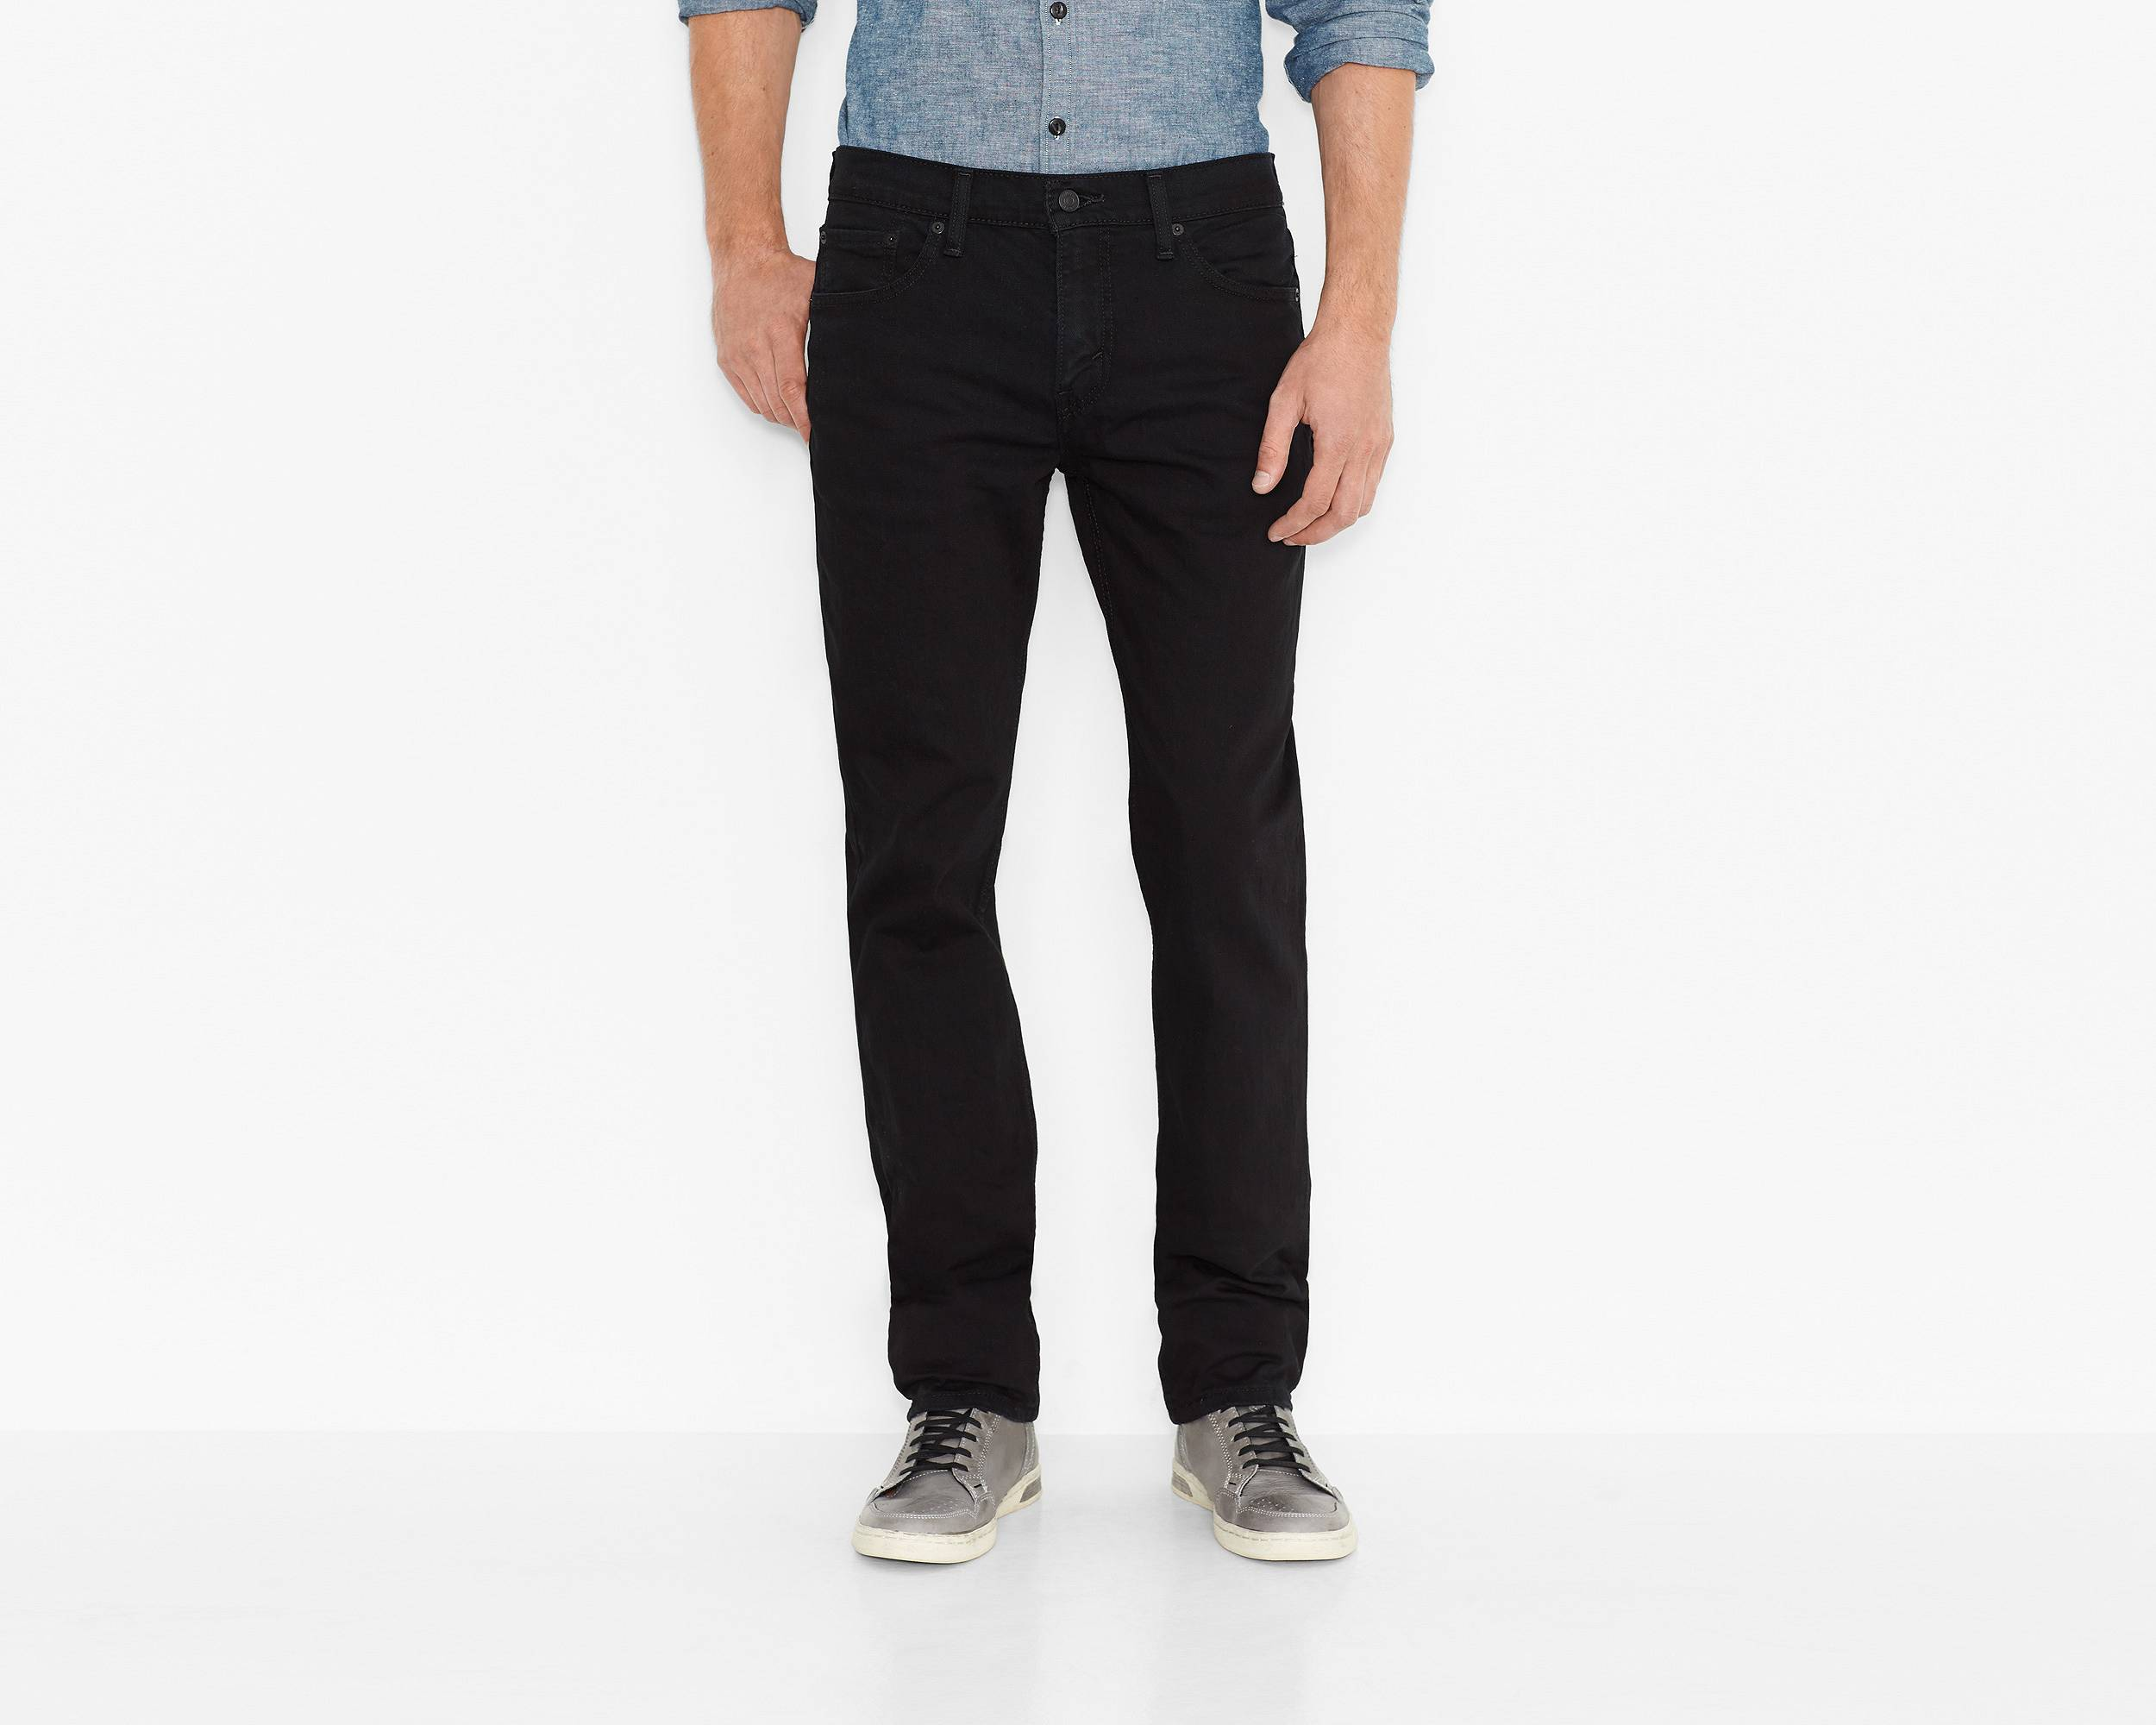 Skinny Stretch Jeans Mens - Is Jeans